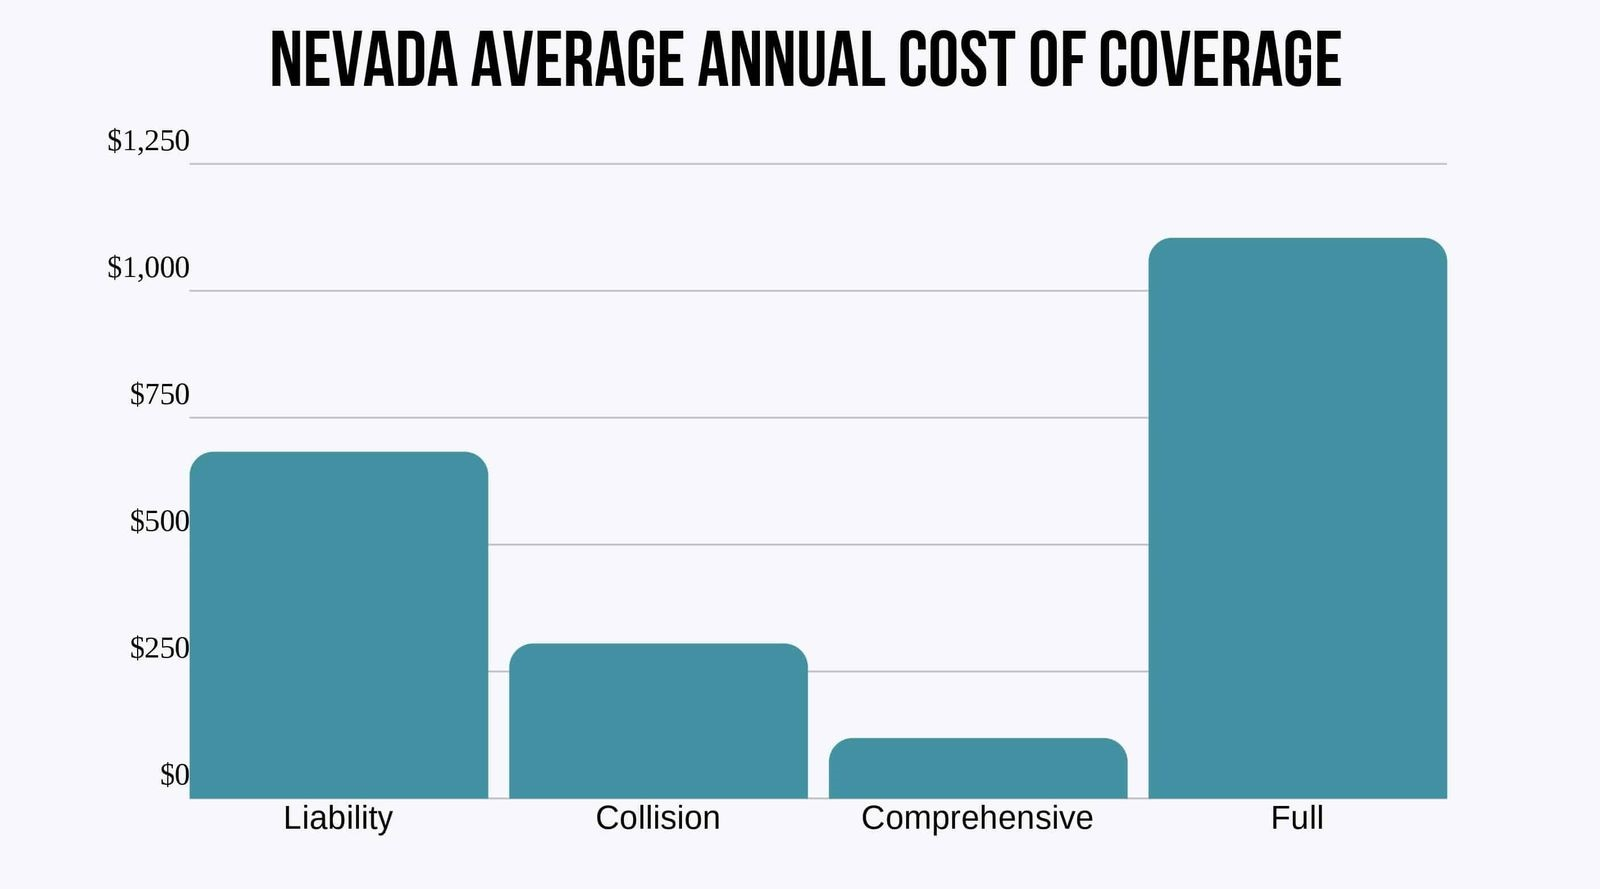 Nevada-Average-Annual-Cost-of-Coverage